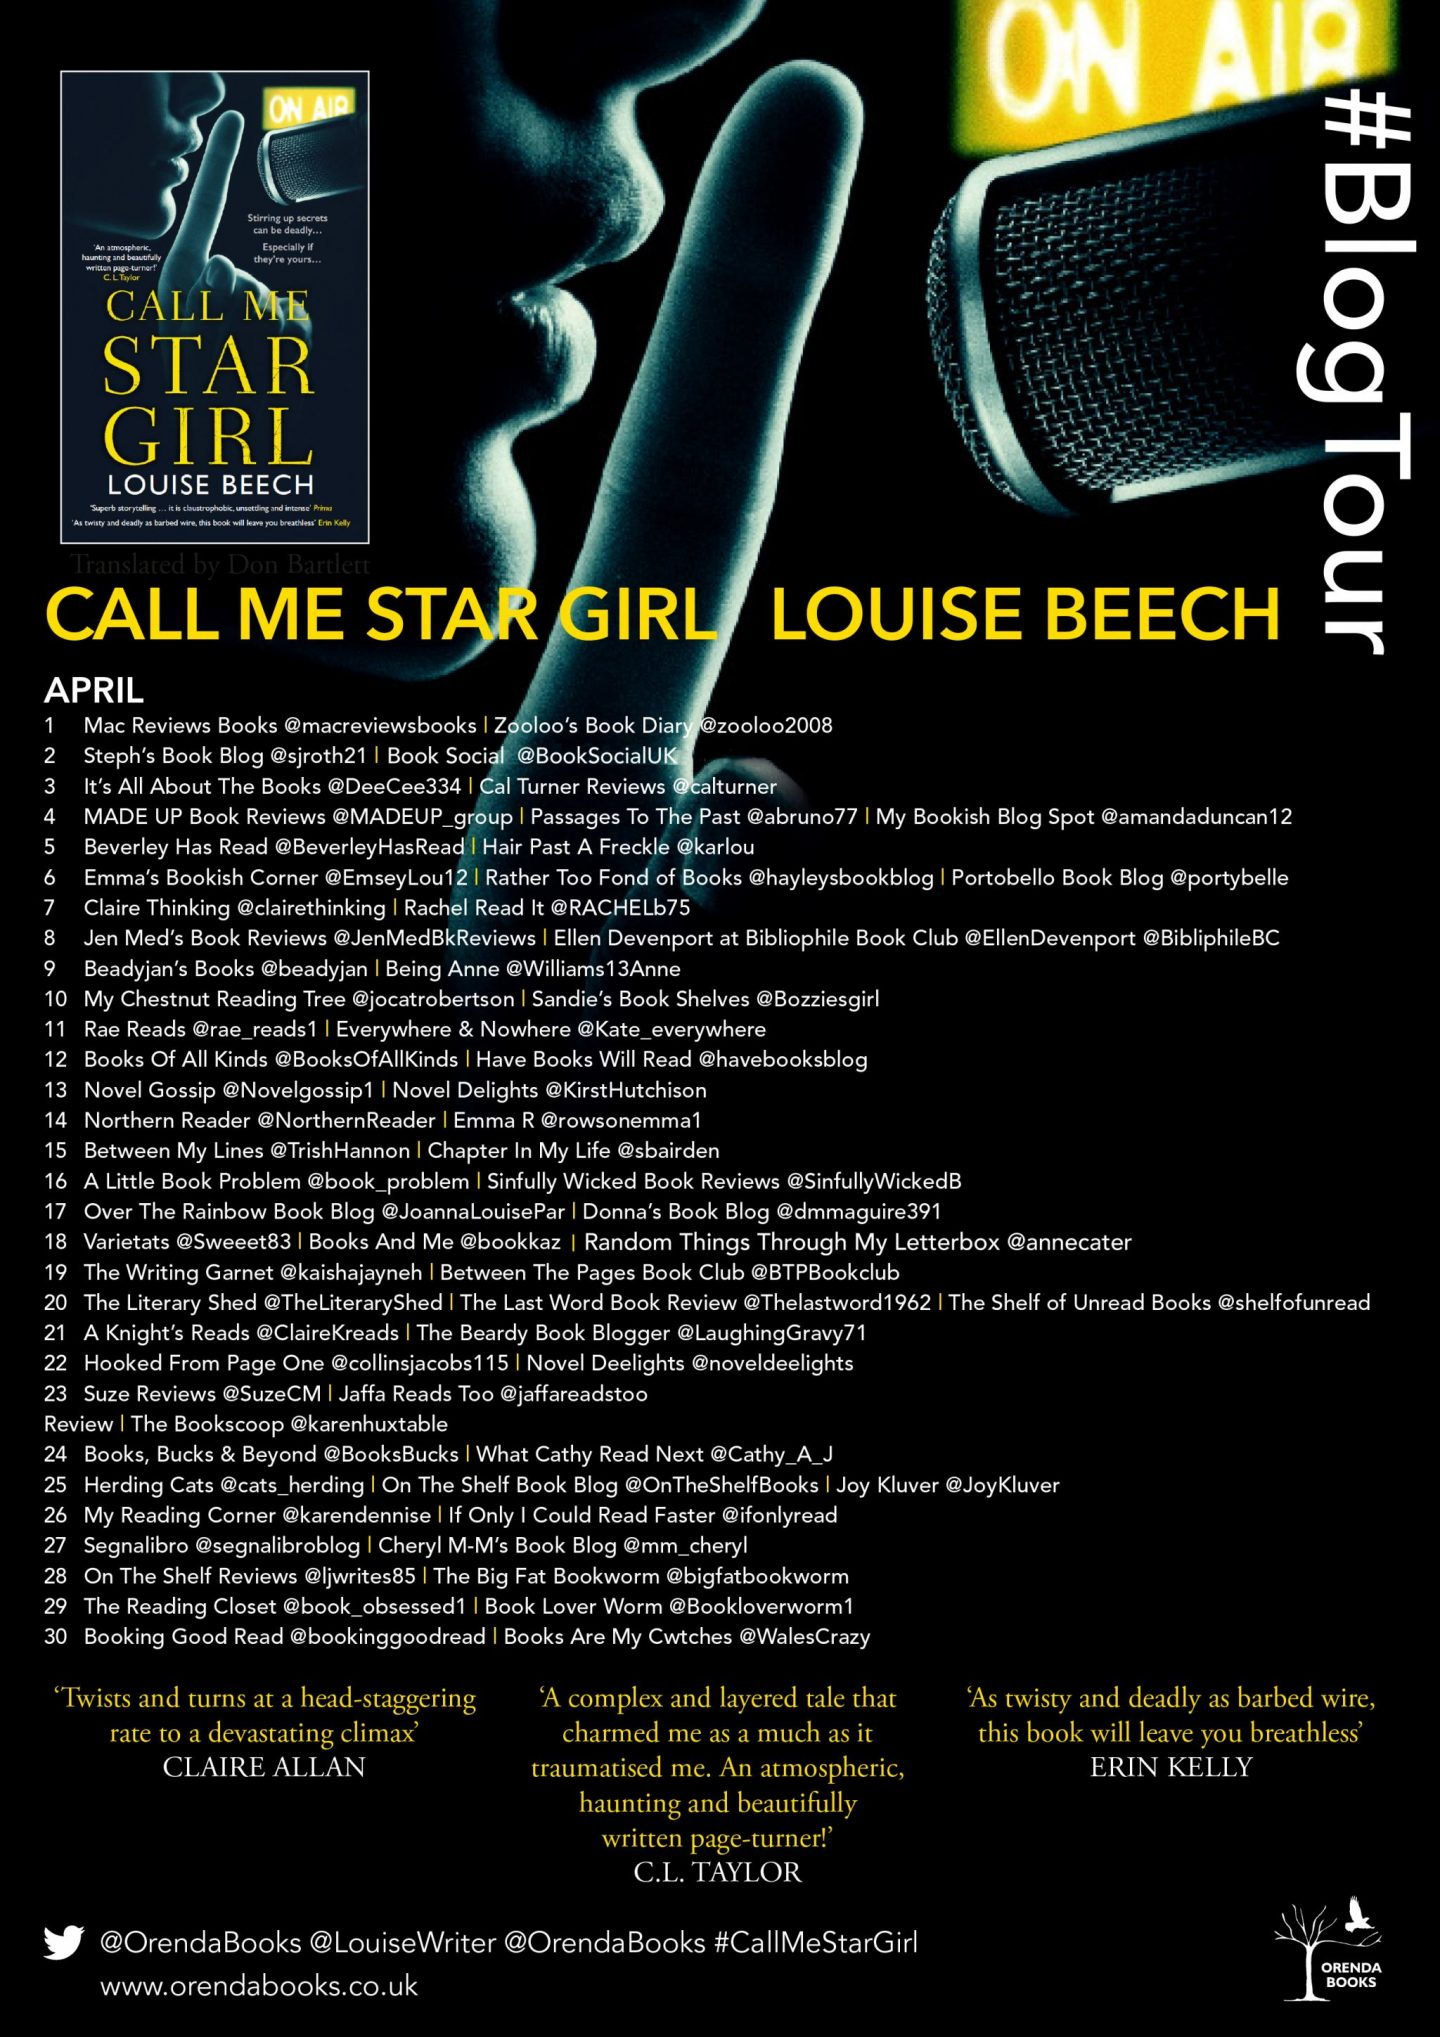 call-me-star-girl-blog-poster-2019